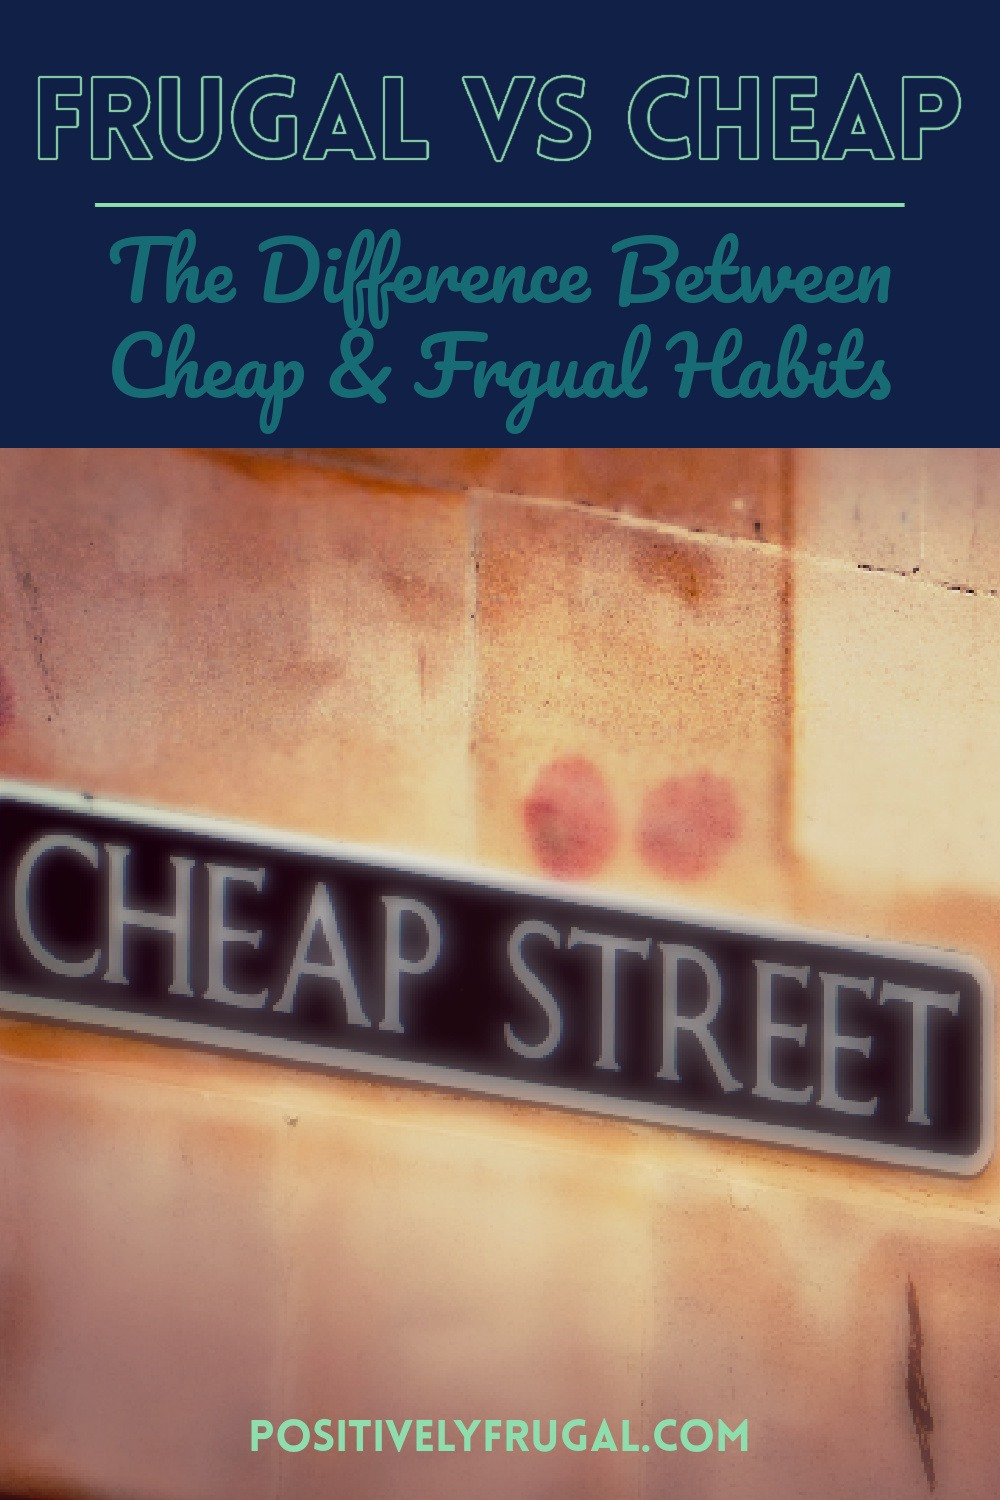 Frugal vs Cheap by PositivelyFrugal.com